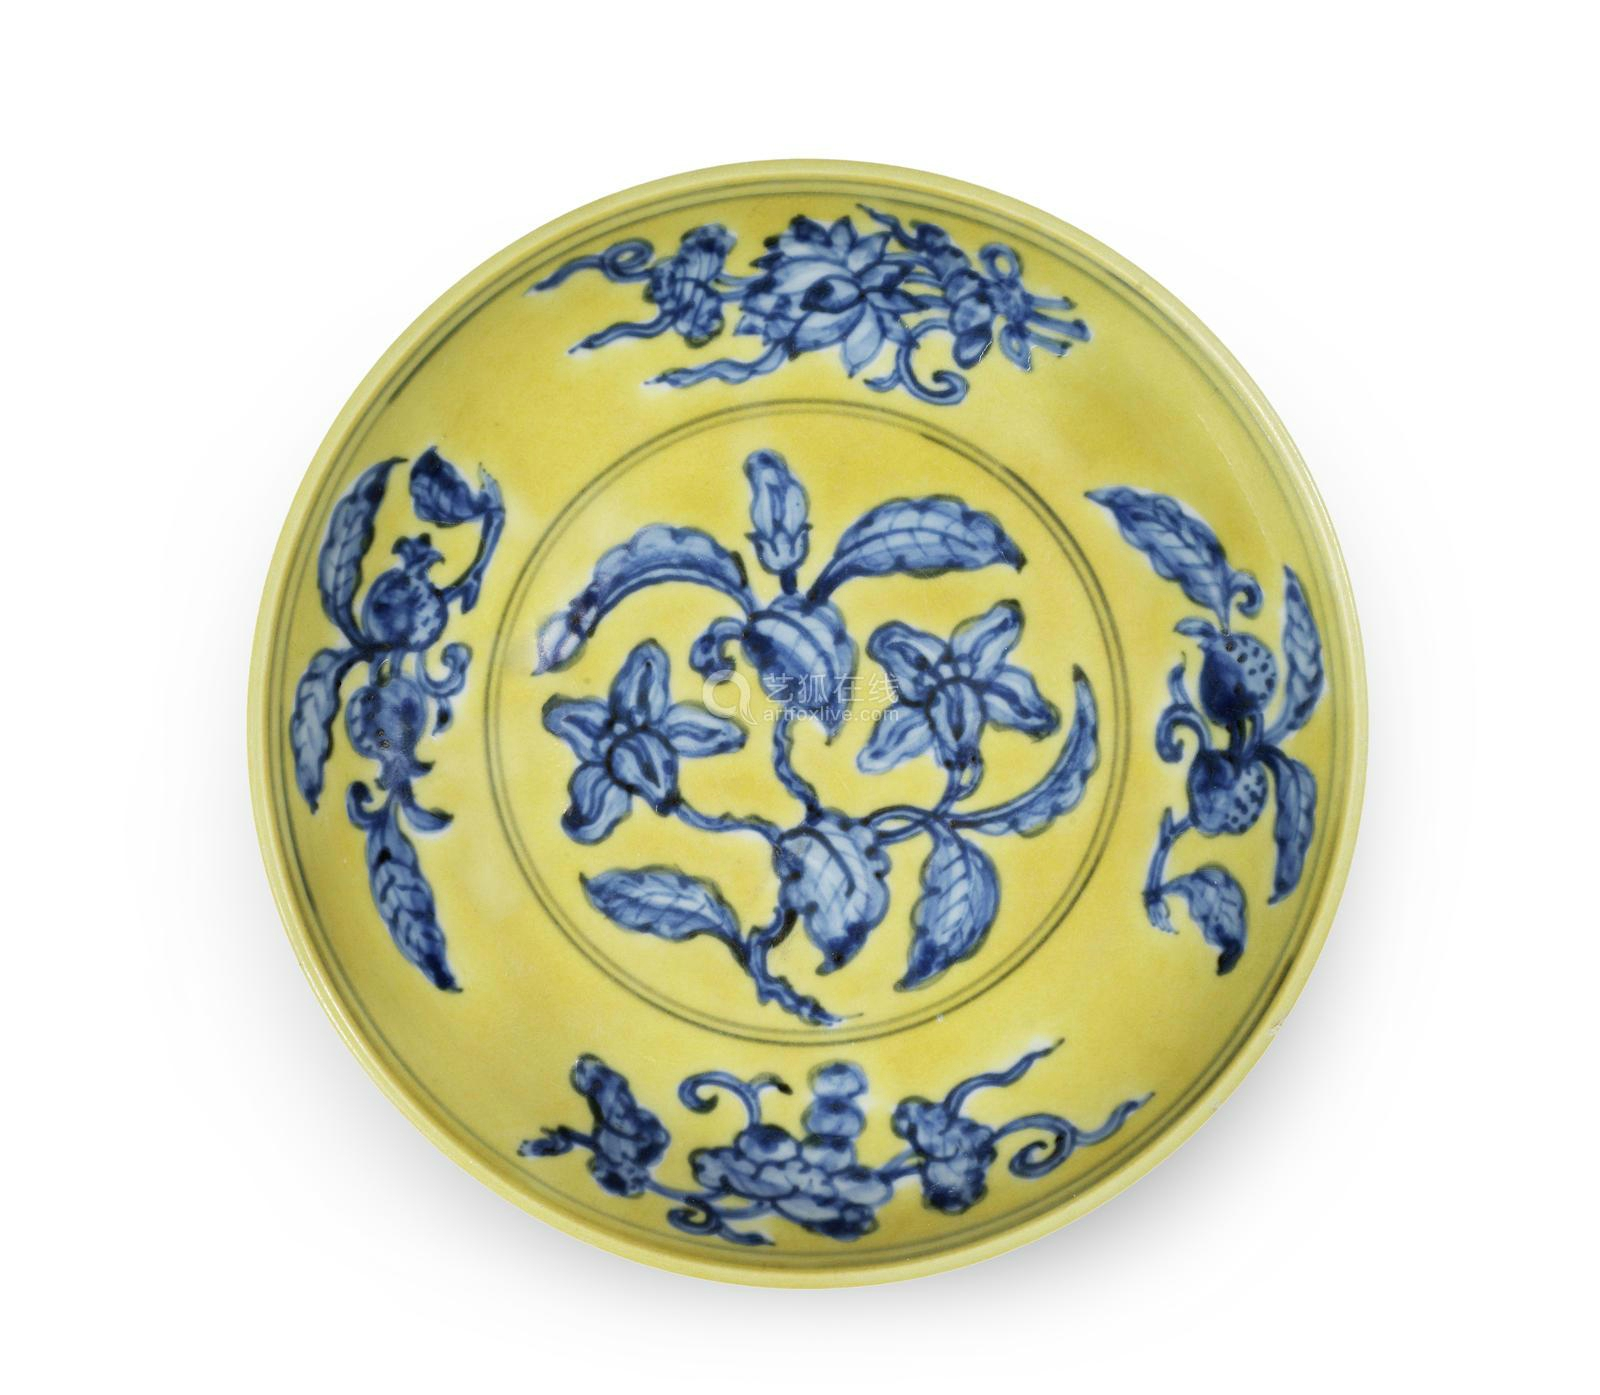 A rare underglaze-blue yellow-ground 'gardenia' saucer dish, Zhengde six-character mark and of the period, from the Cunliffe Collection